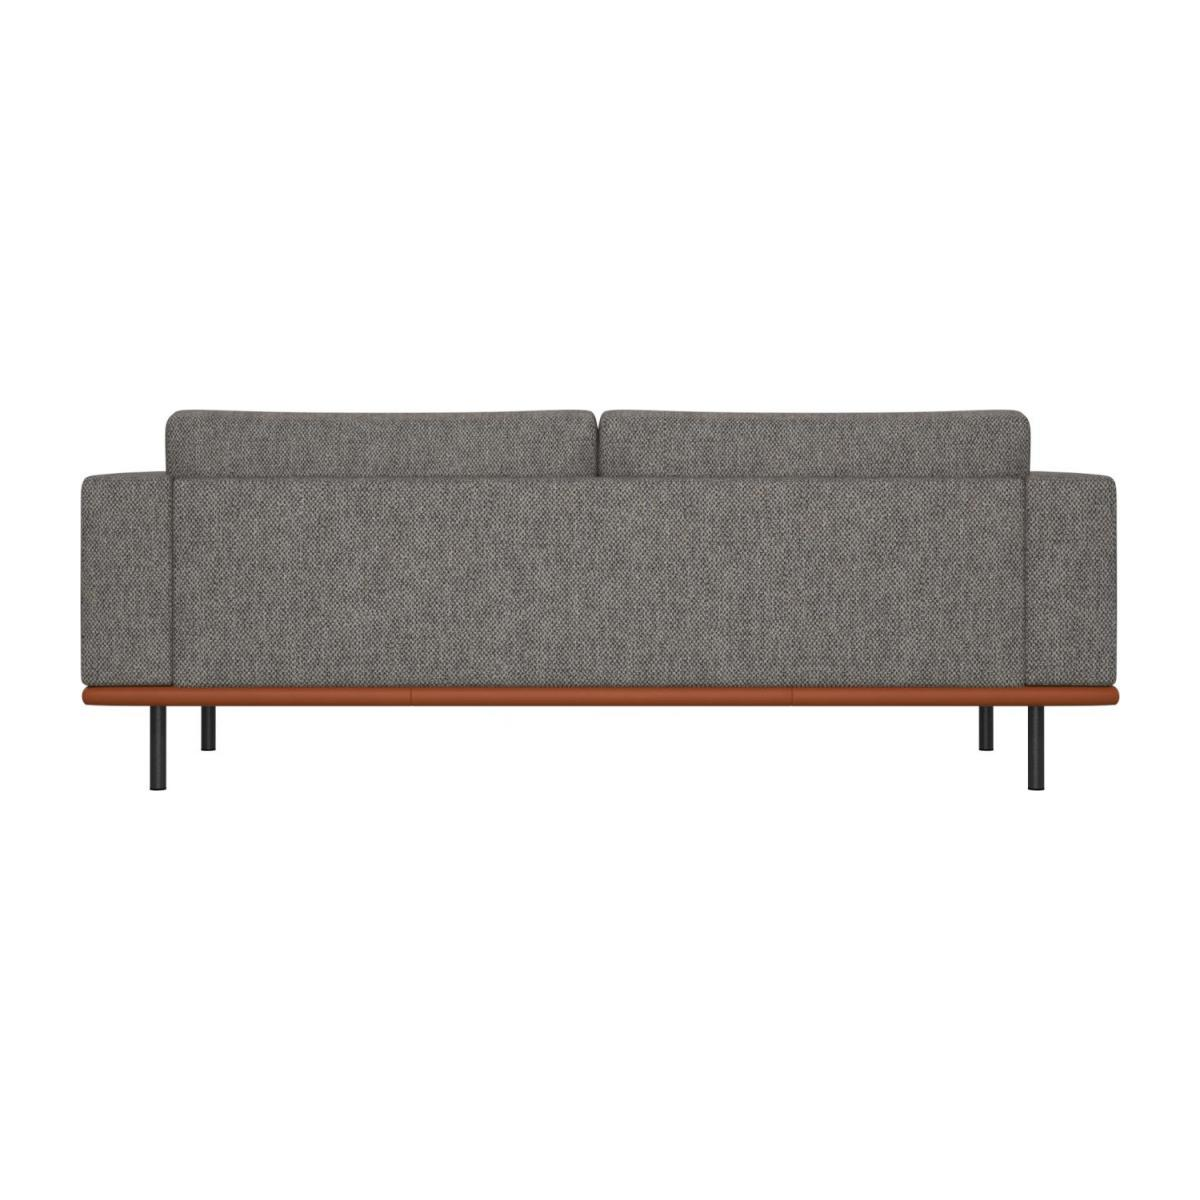 3 seater sofa in Bellagio fabric, night black with base in brown leather n°3